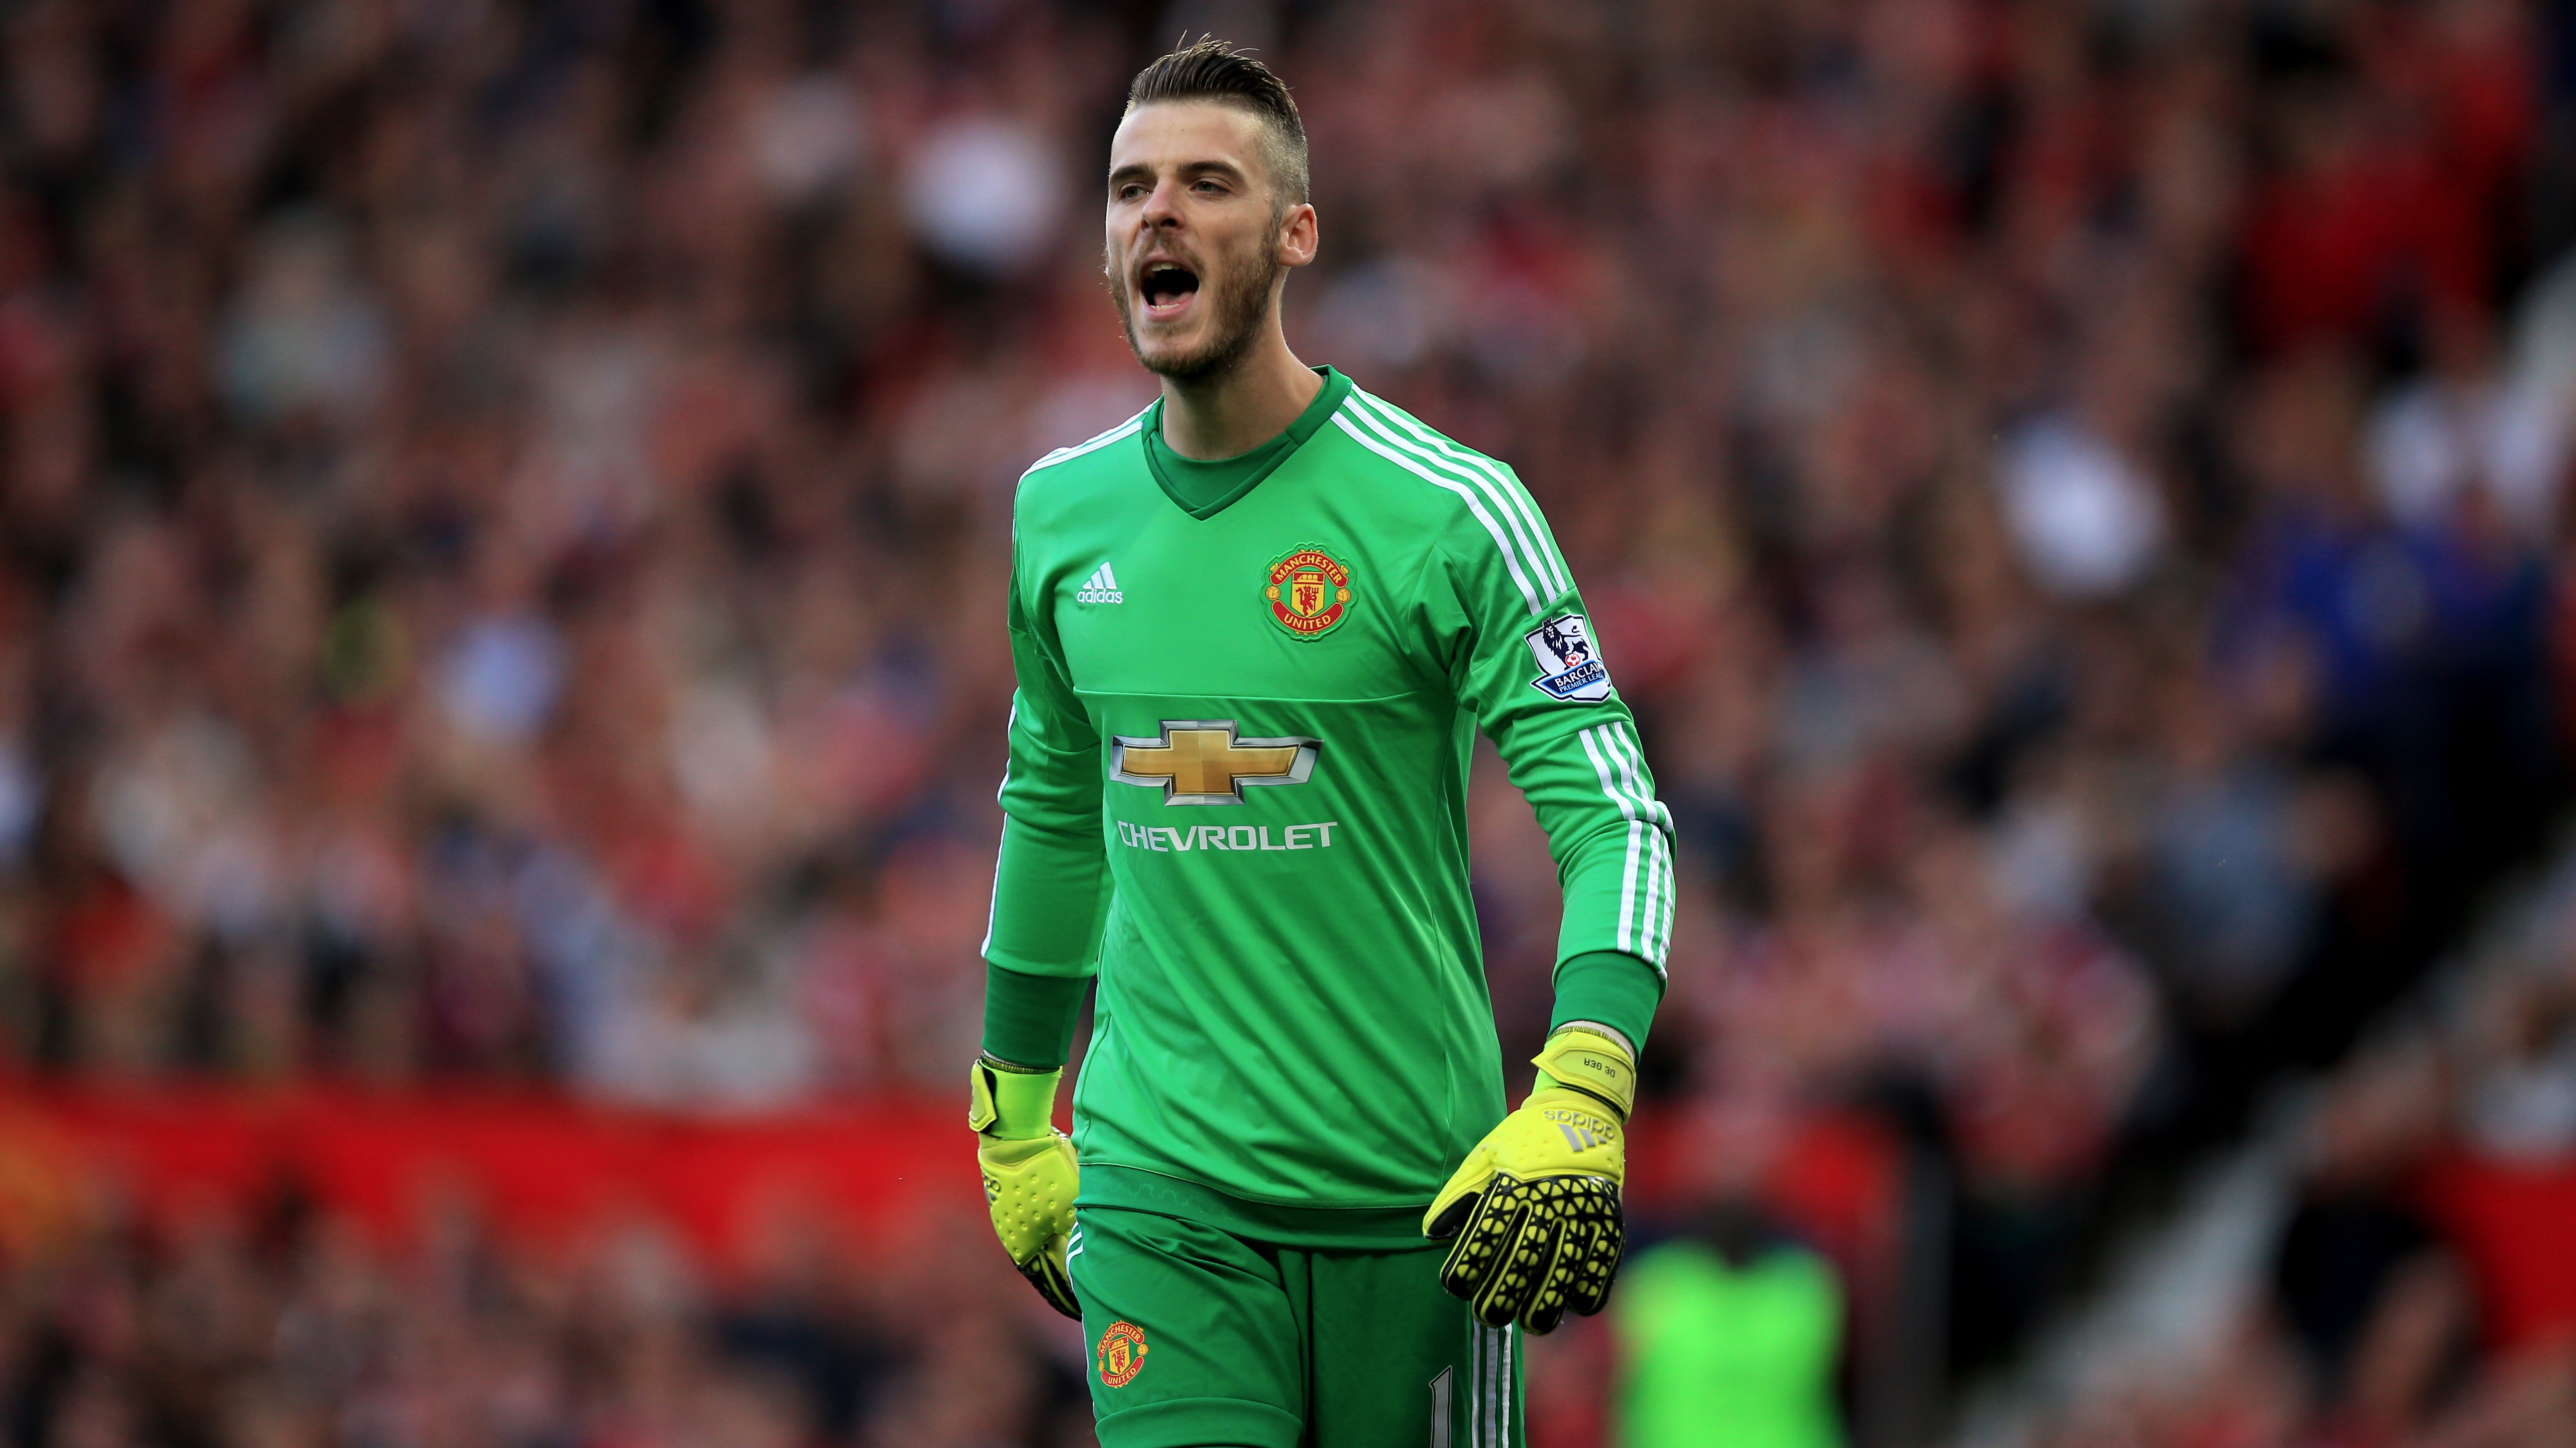 David de Gea can win the league for Manchester United